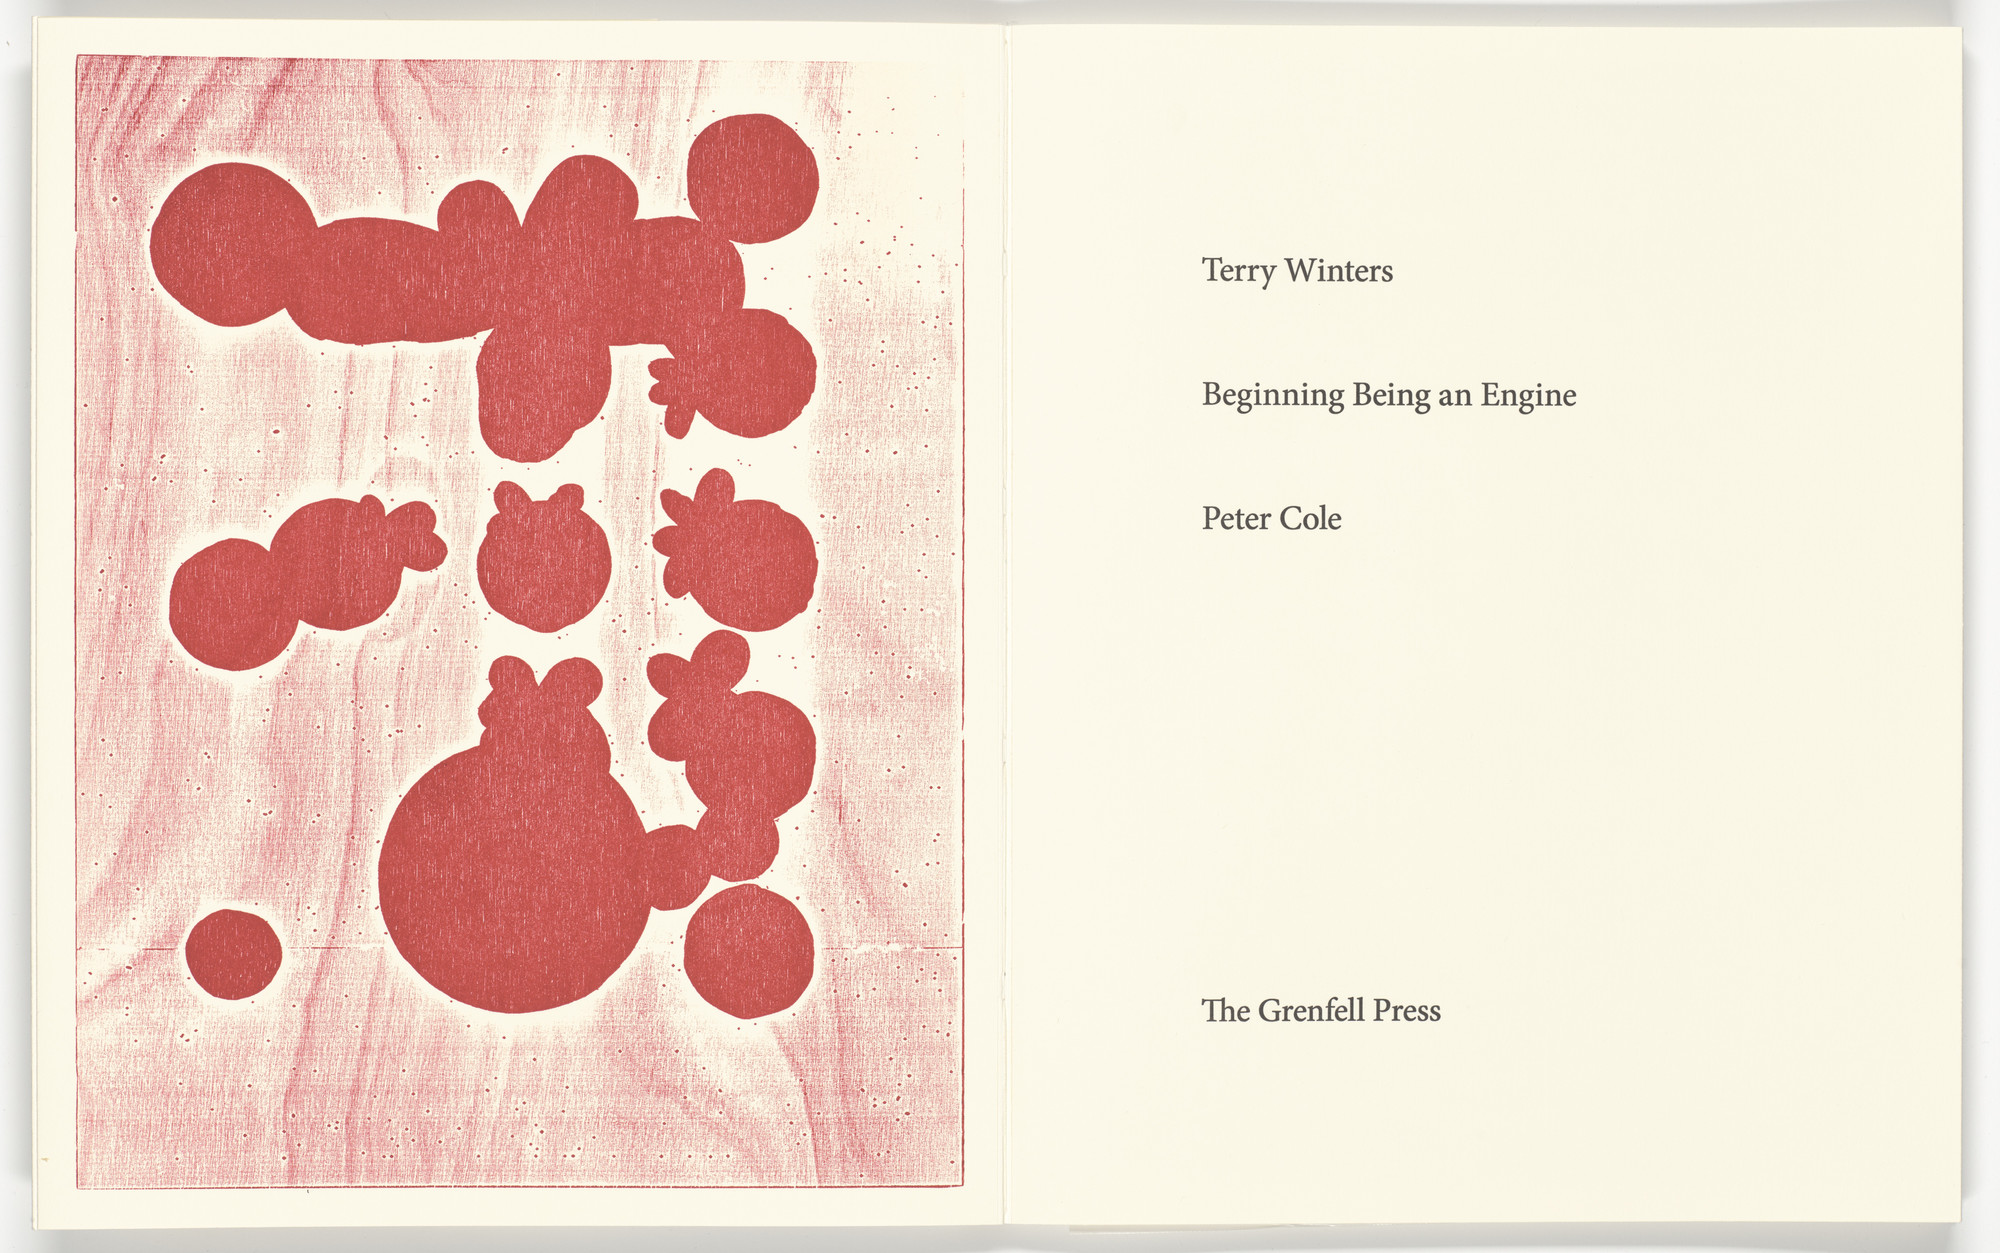 Terry Winters. Frontispiece from Beginning Being an Engine. 2020